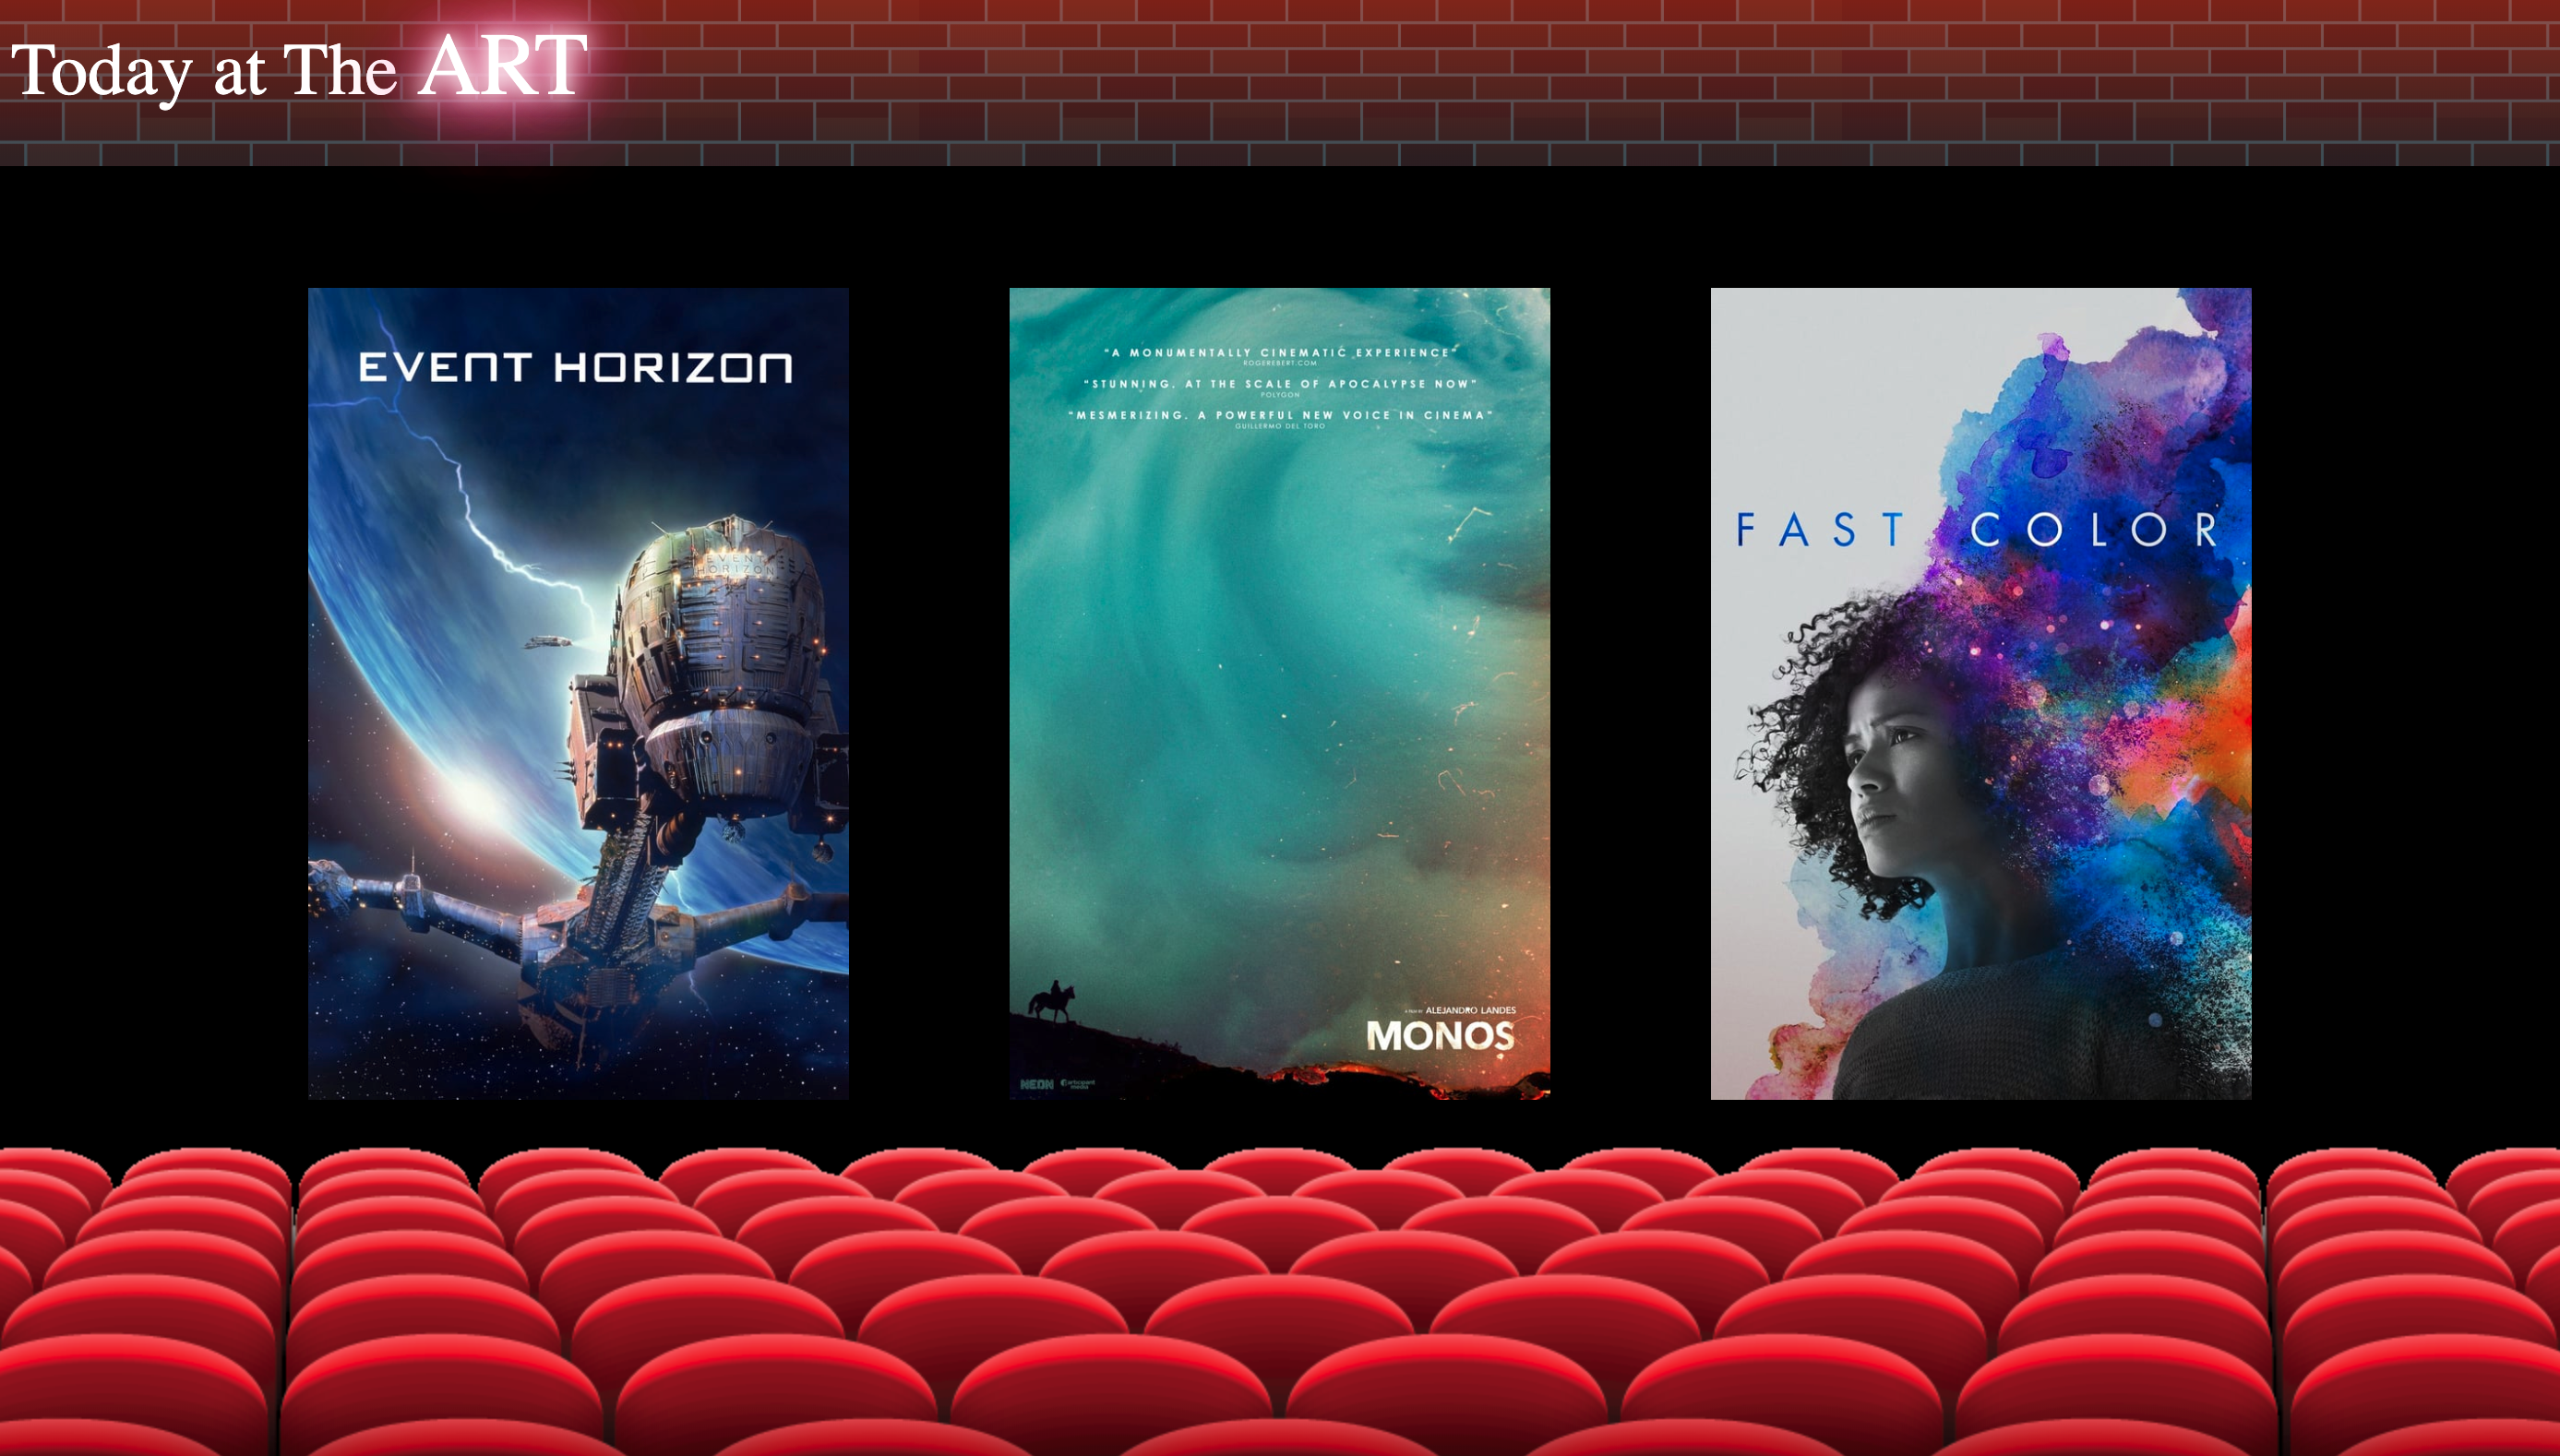 UI with movie chairs and posters